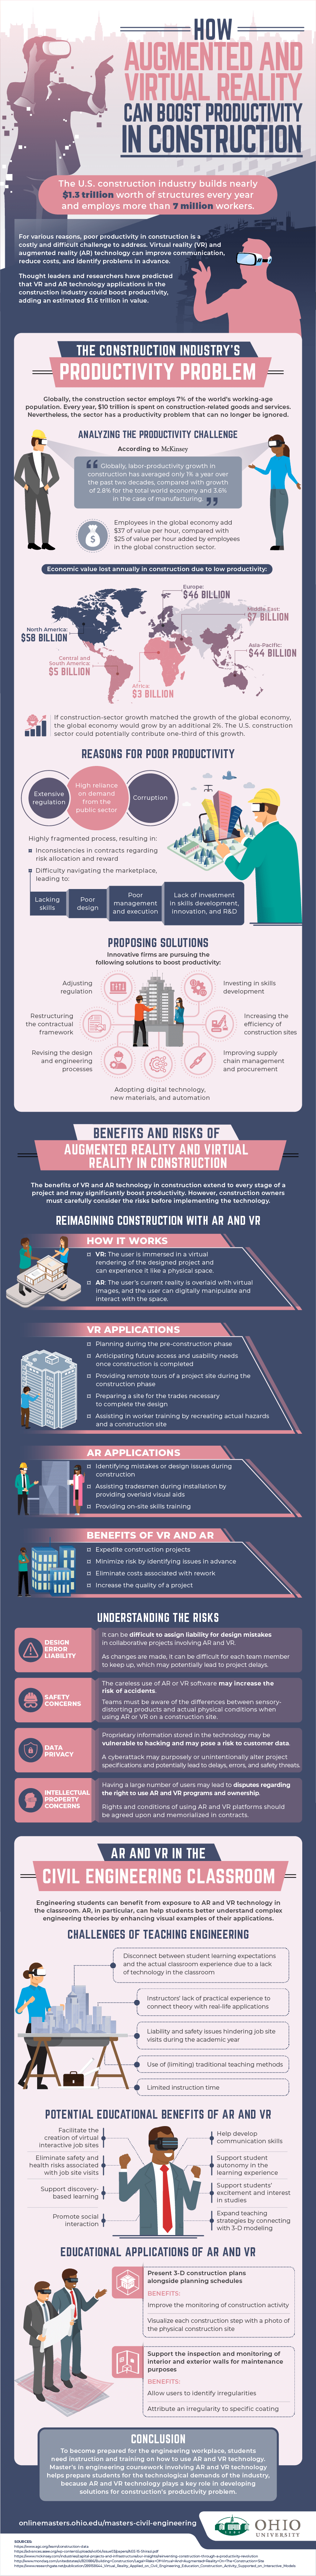 How the use of AR and VR can help improve productivity and economic value to construction.